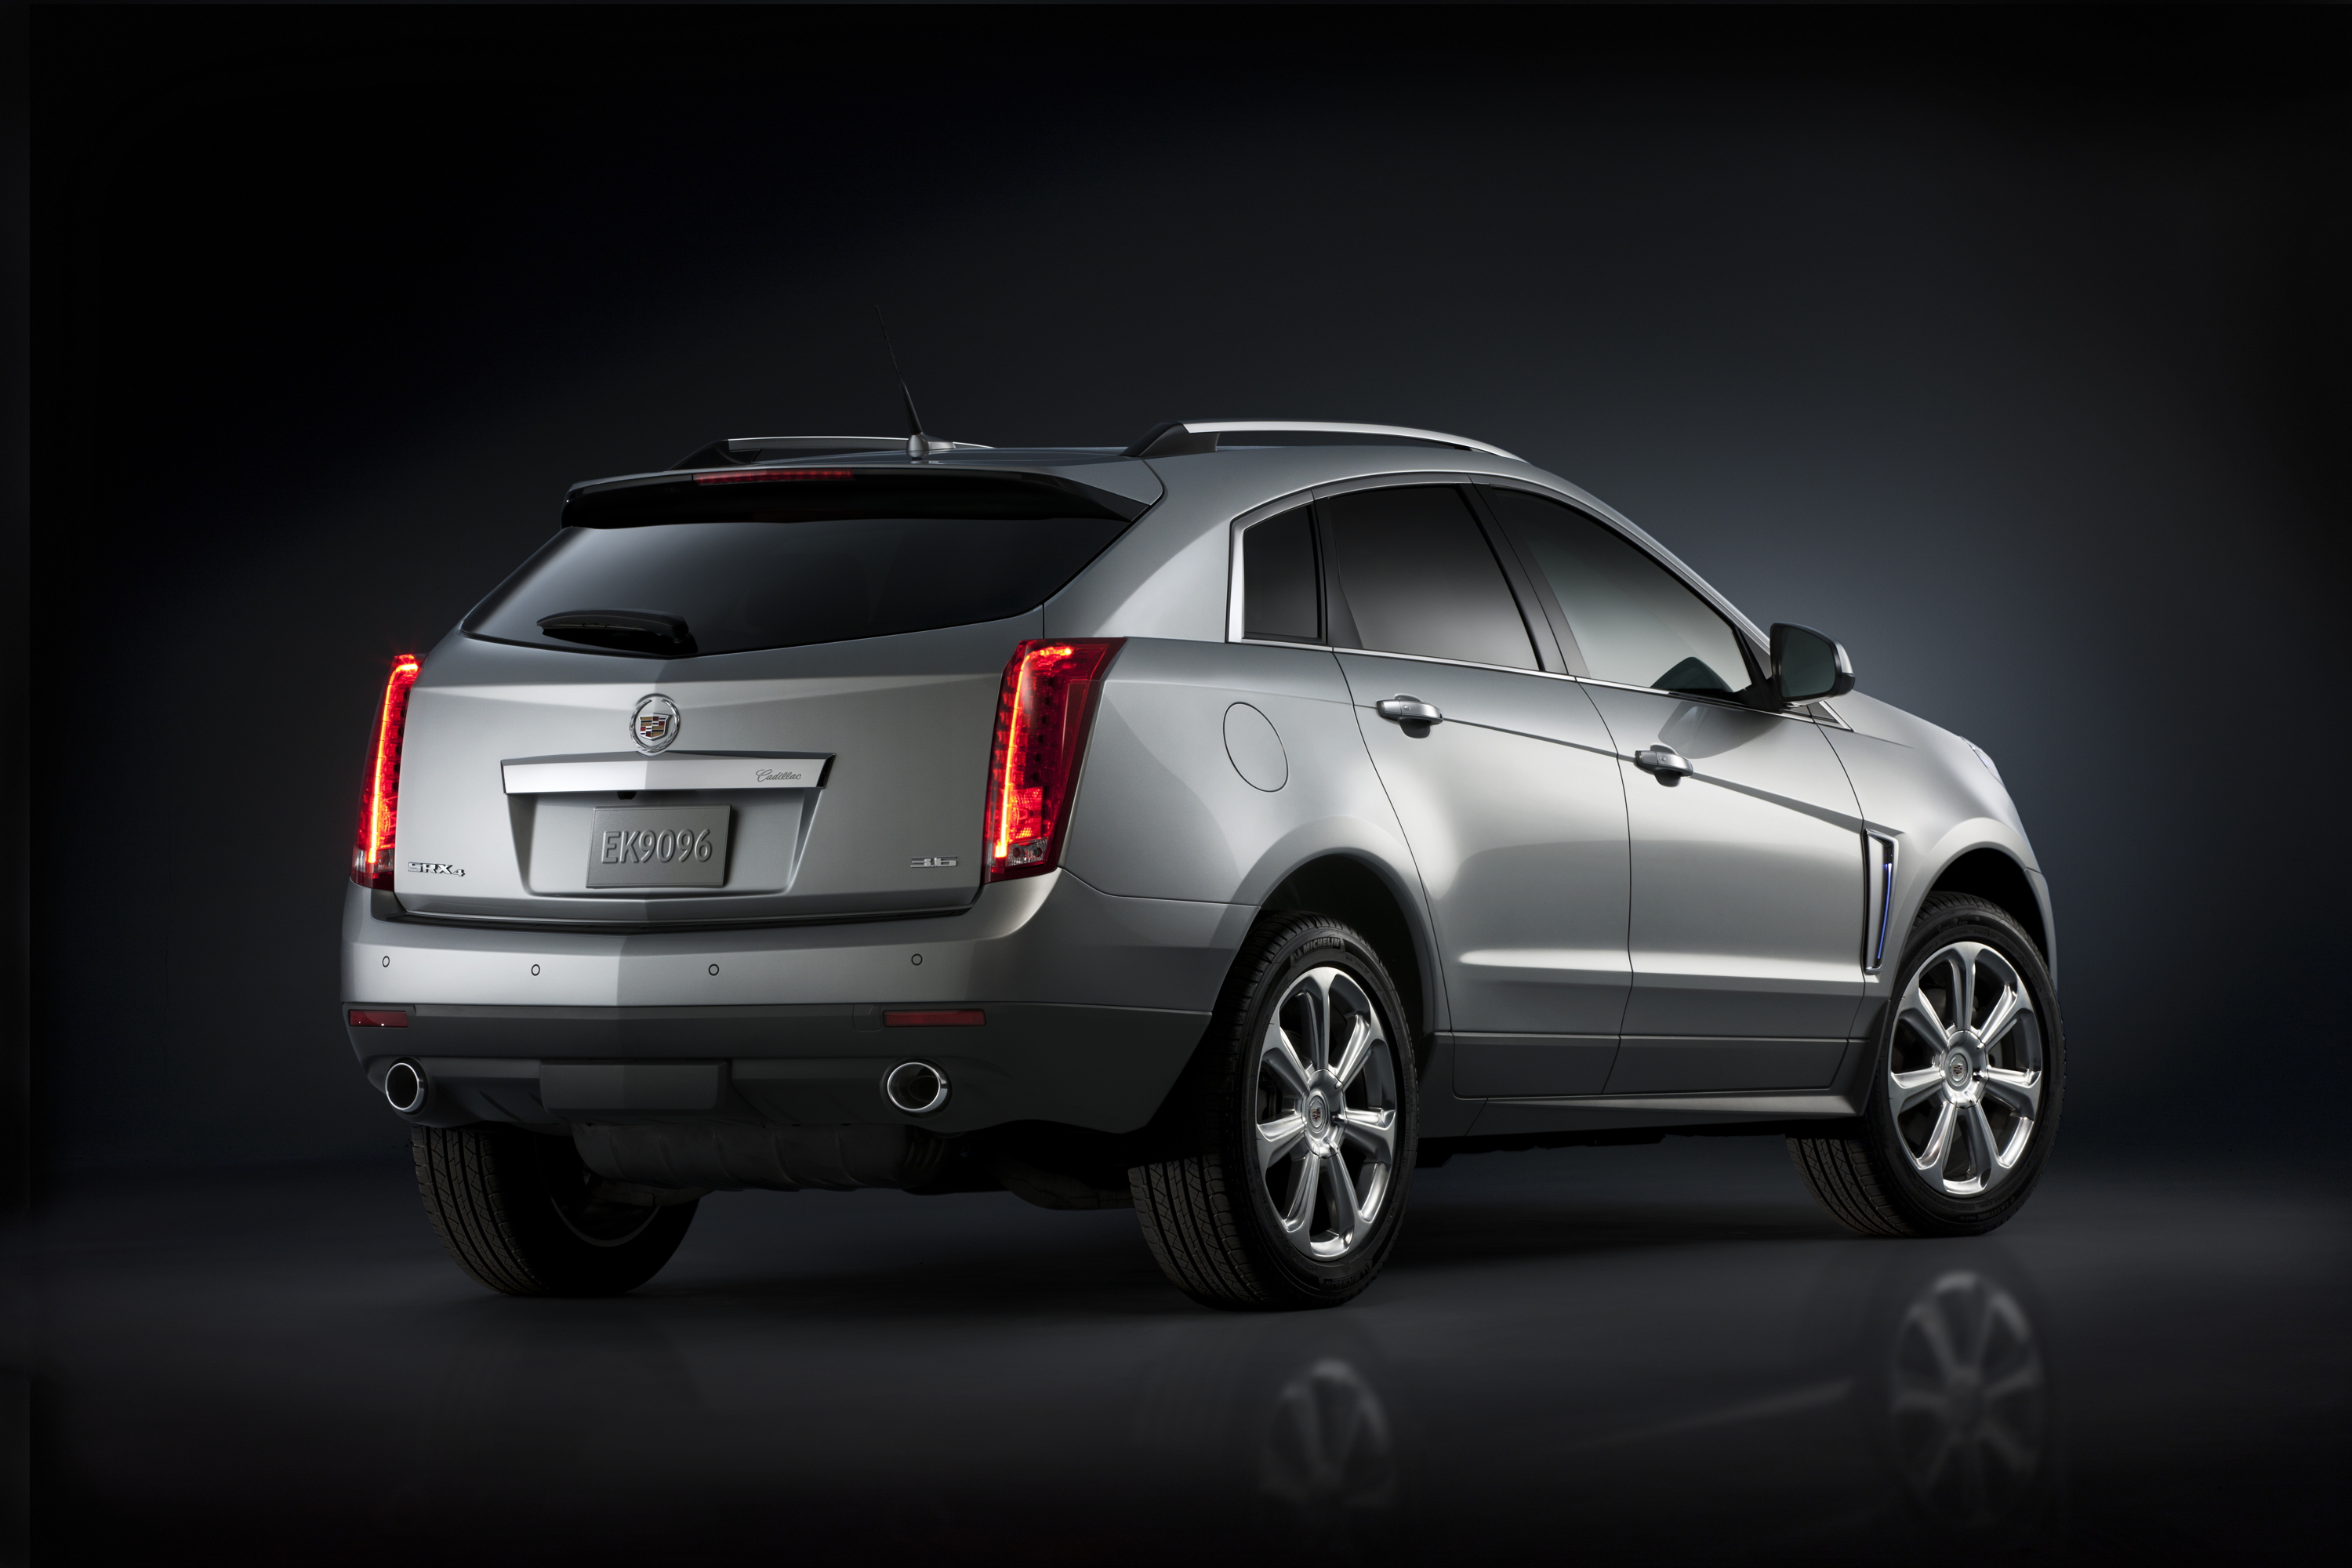 specs and cadillac cts pictures images information srx auto